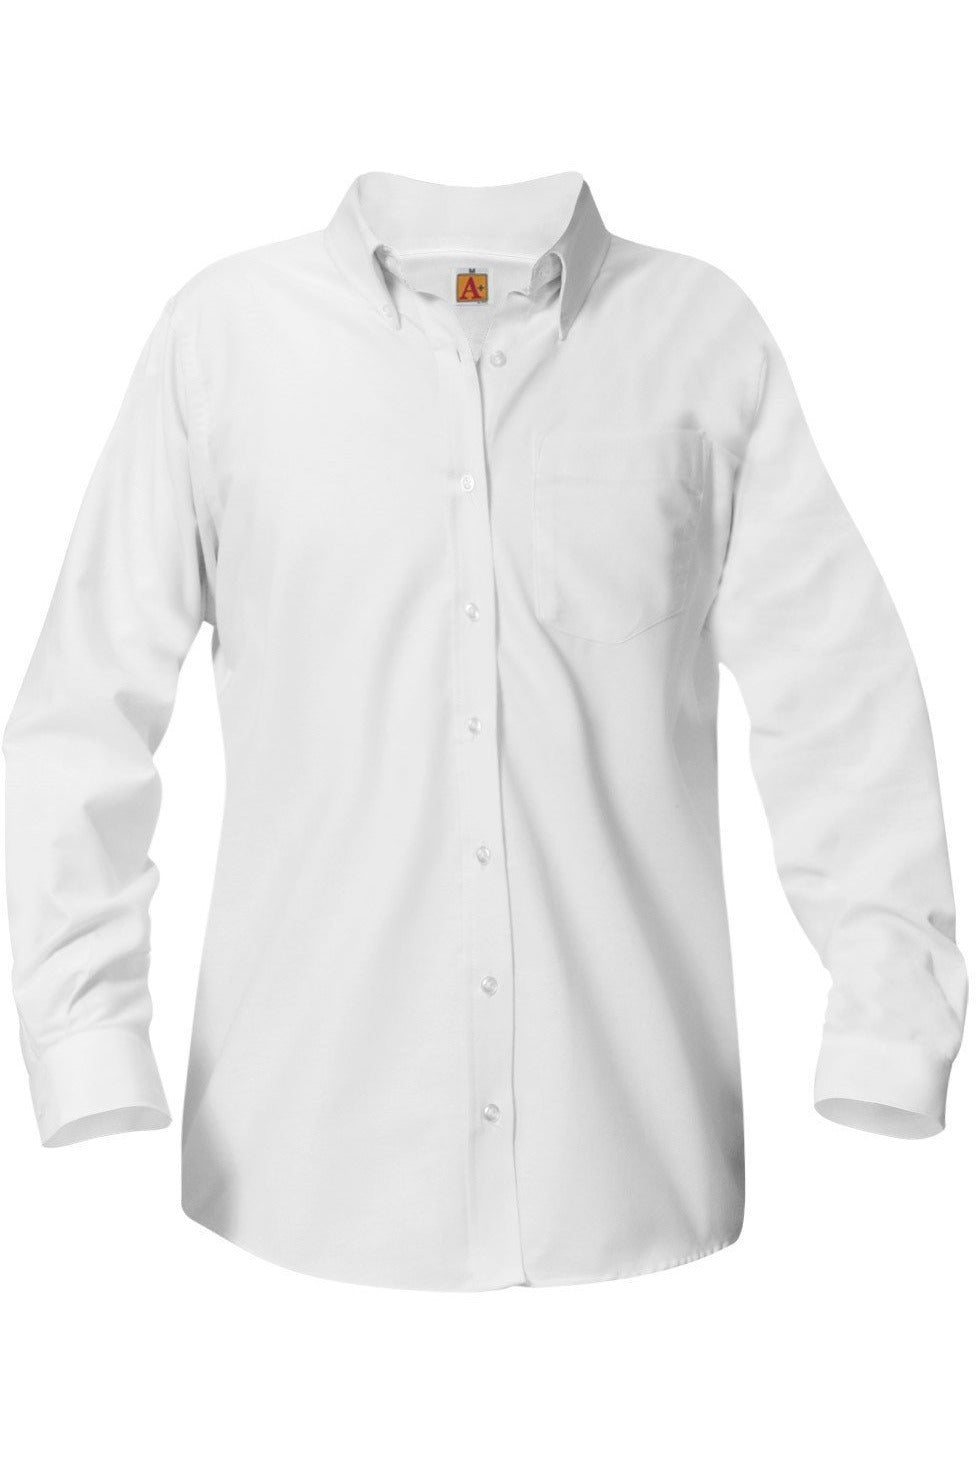 Ladies Long Sleeve Fitted Oxford Shirt - RC Uniforms